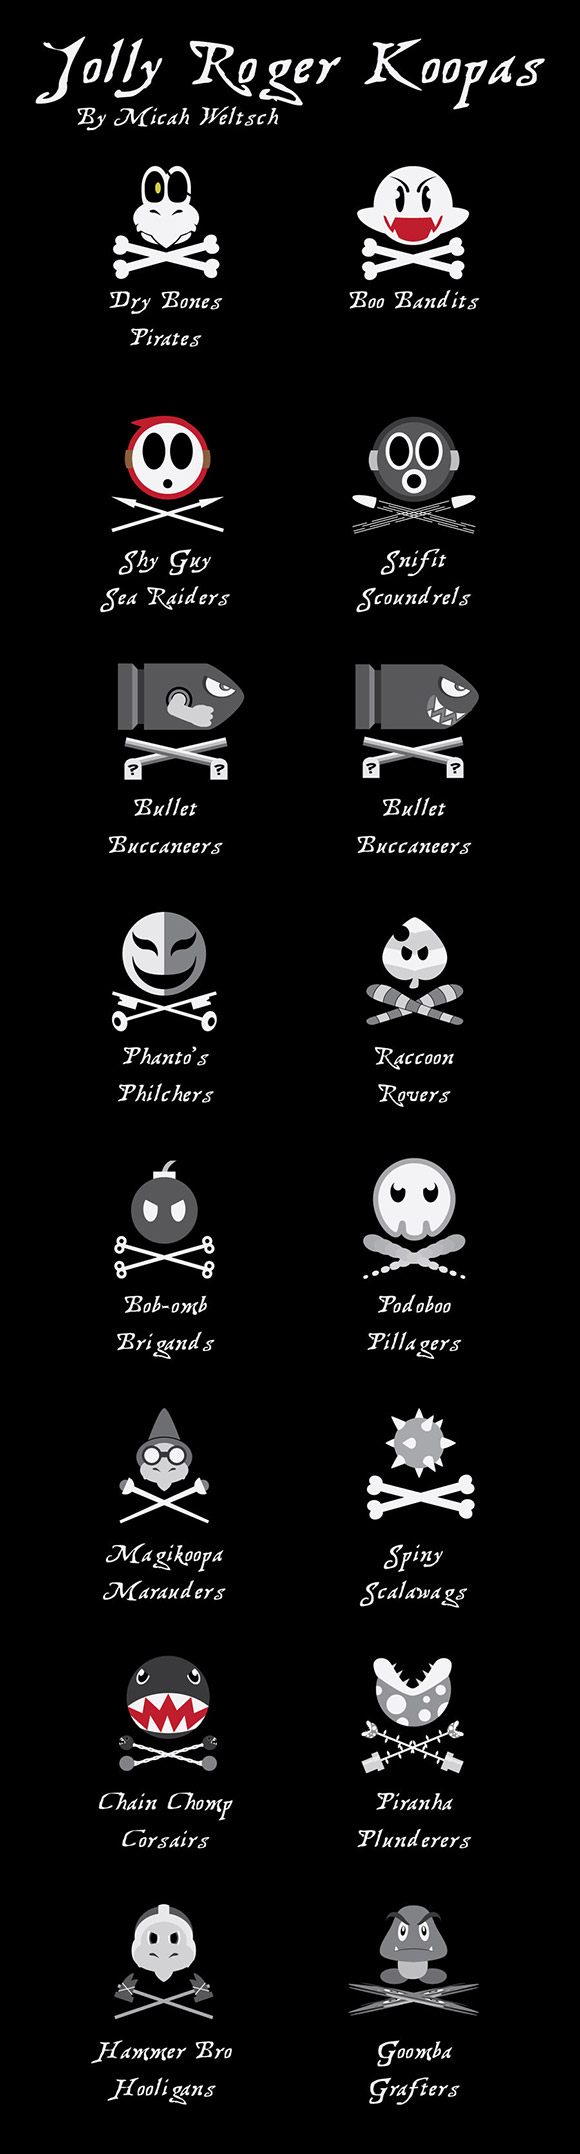 Mario Pirate Flags 1 Jolly Roger Koopas   Marios Piraten [1 Arrrrr]